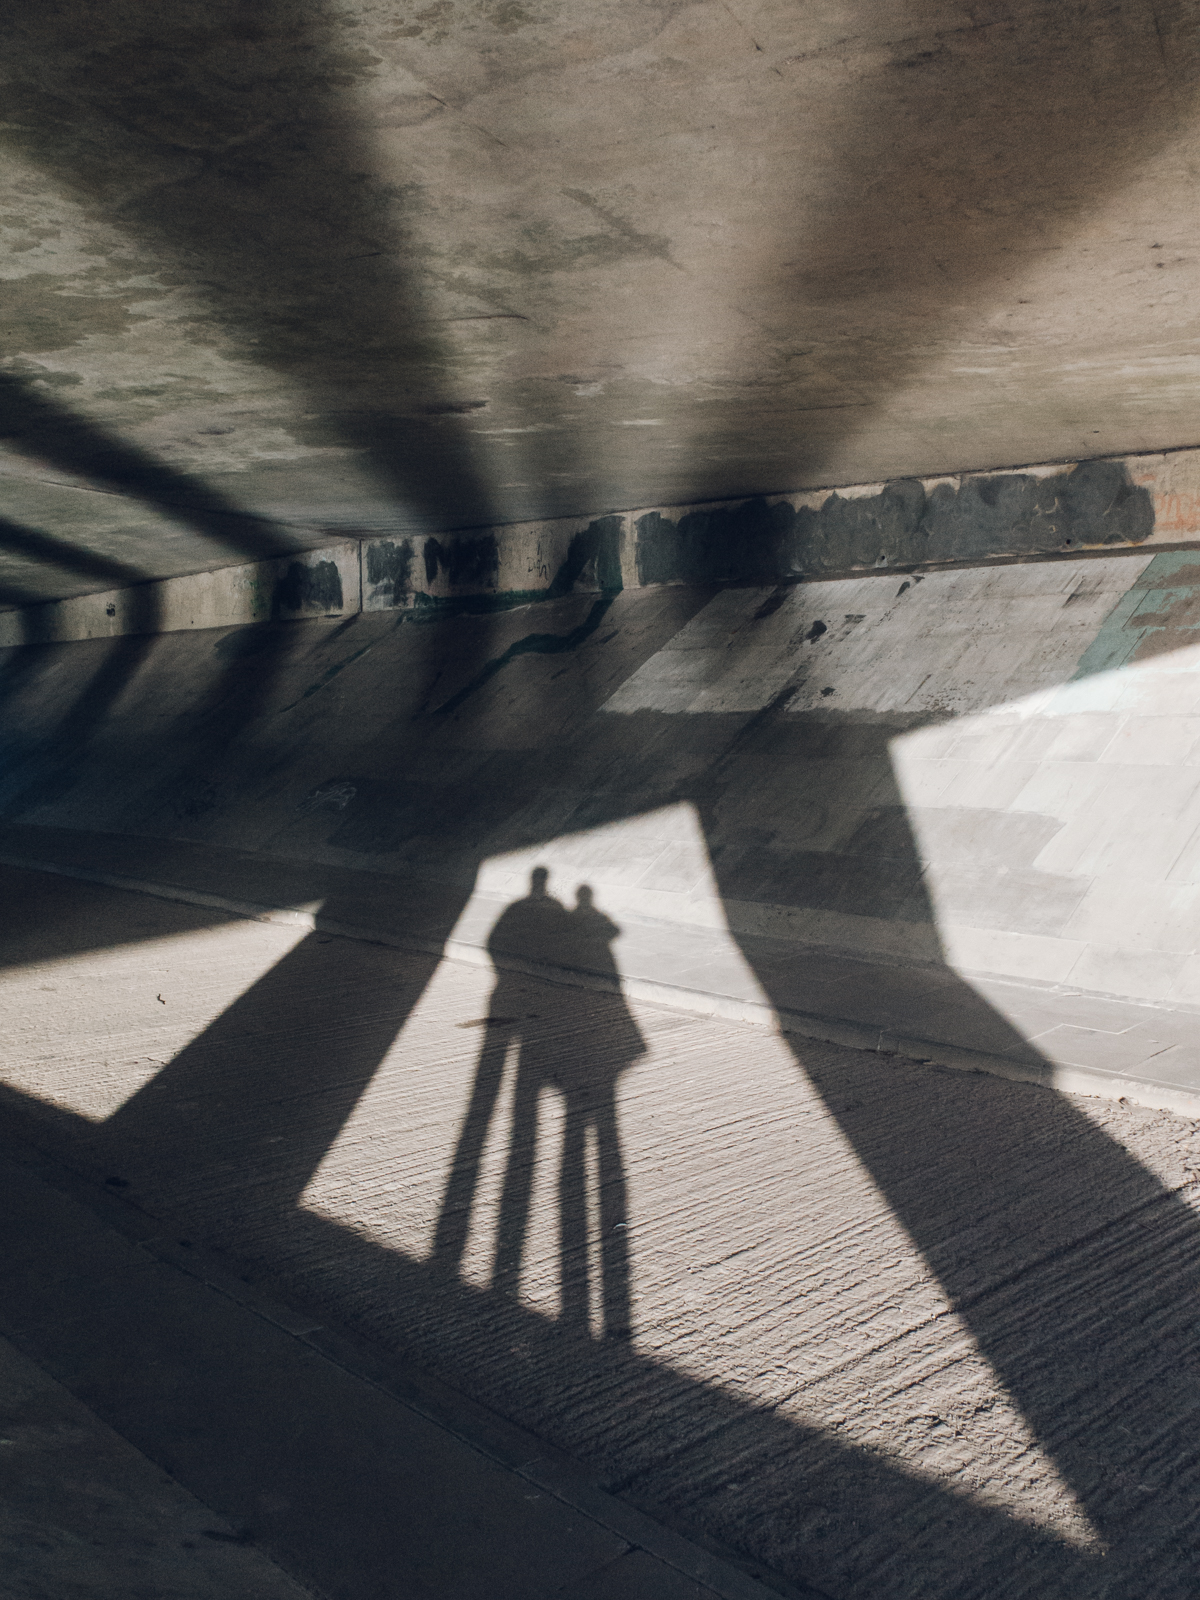 Our shadows on a winter walk by the river.